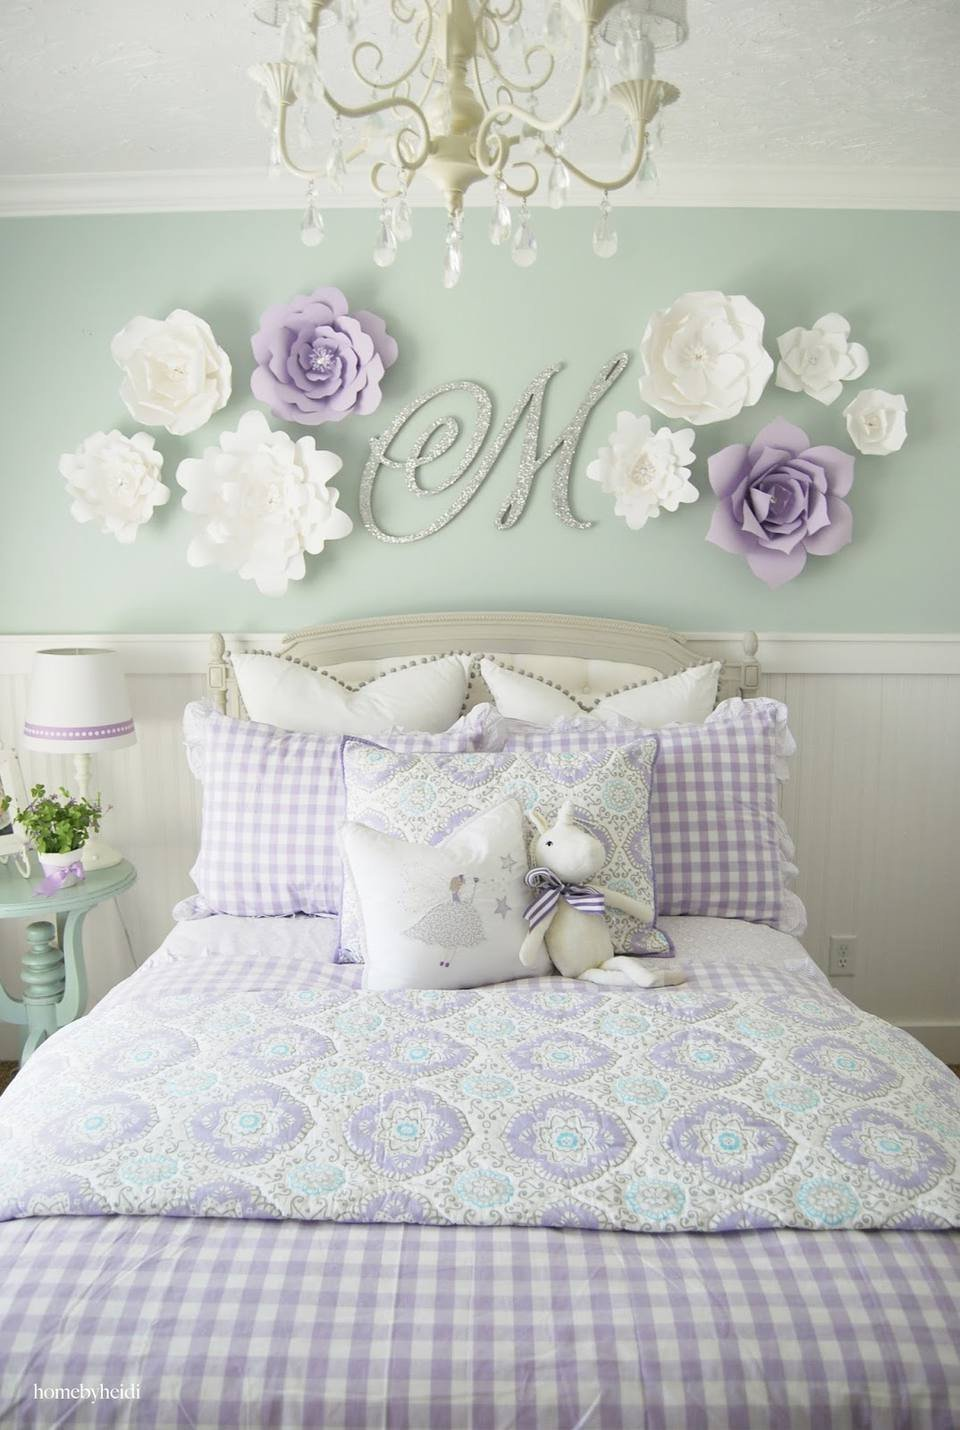 Homemade Wall Decoration Ideas for Bedroom Fresh 24 Wall Decor Ideas for Girls Rooms